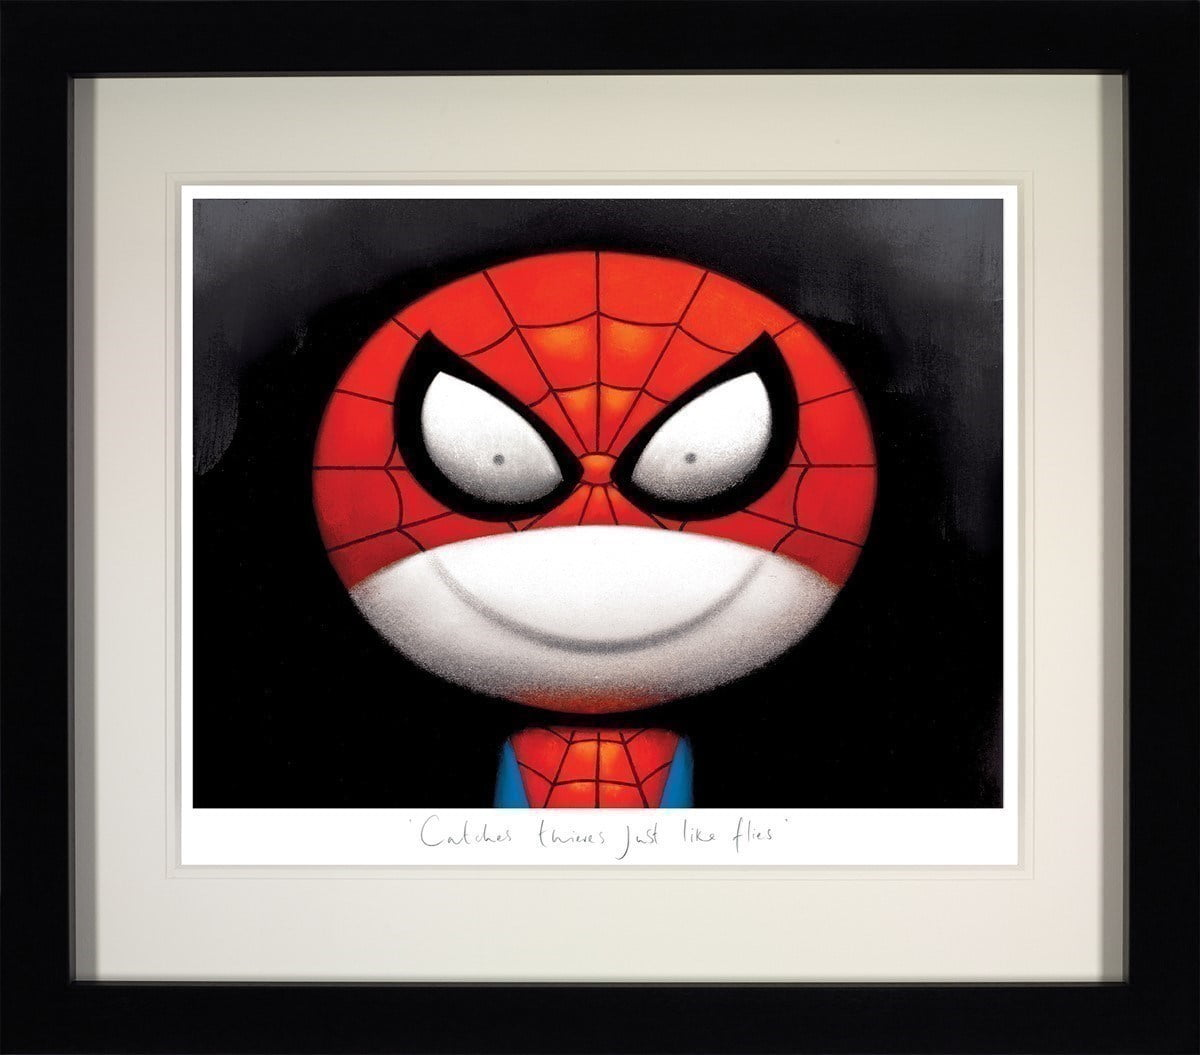 Catches Thieves Just Like Flies (Large) ~ Doug Hyde